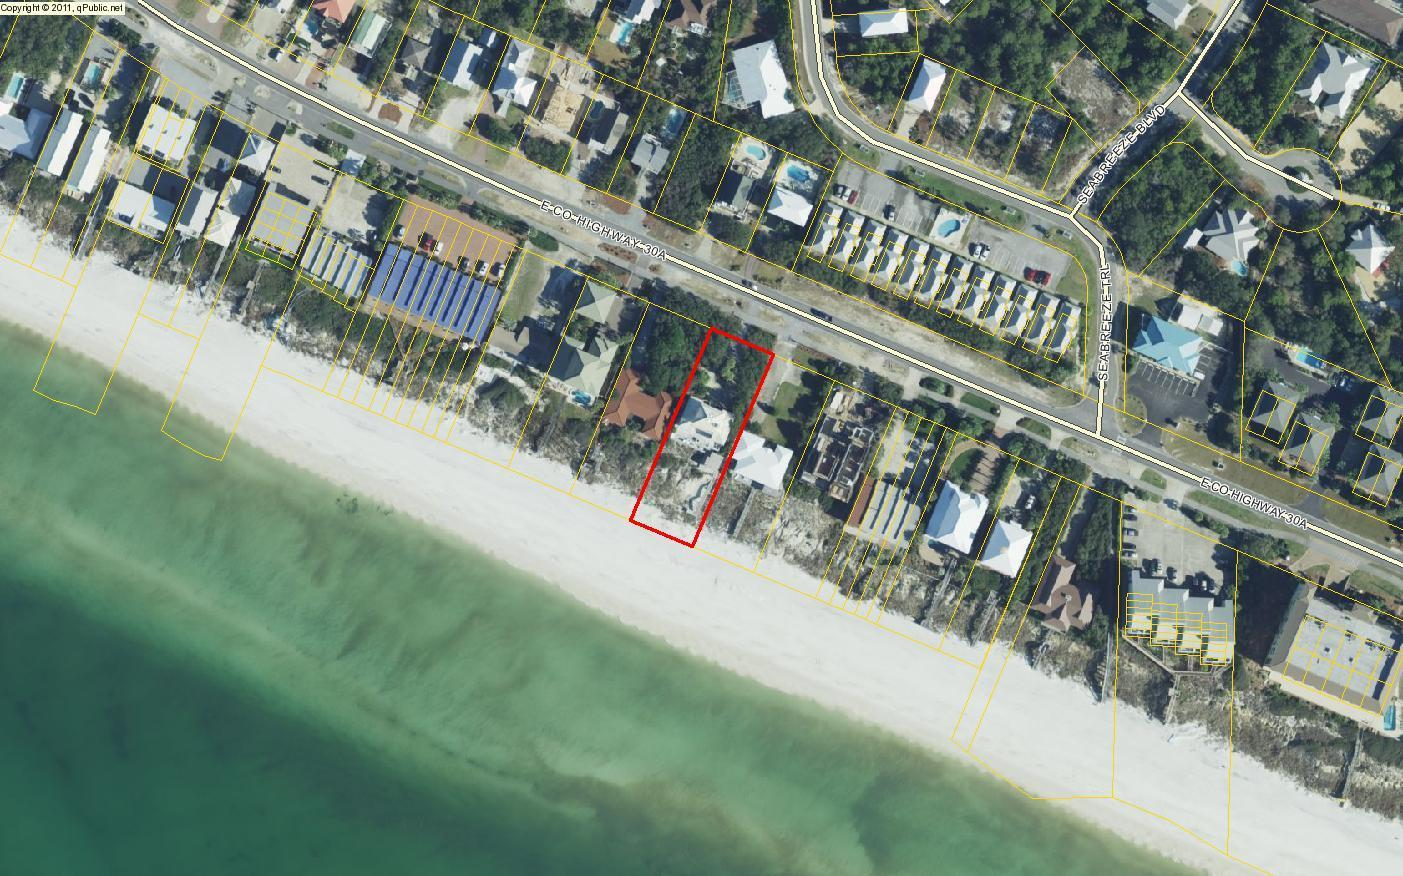 8186 Co Highway 30-A,Inlet Beach,Florida 32461,Vacant land,Co Highway 30-A,20131126143817002353000000